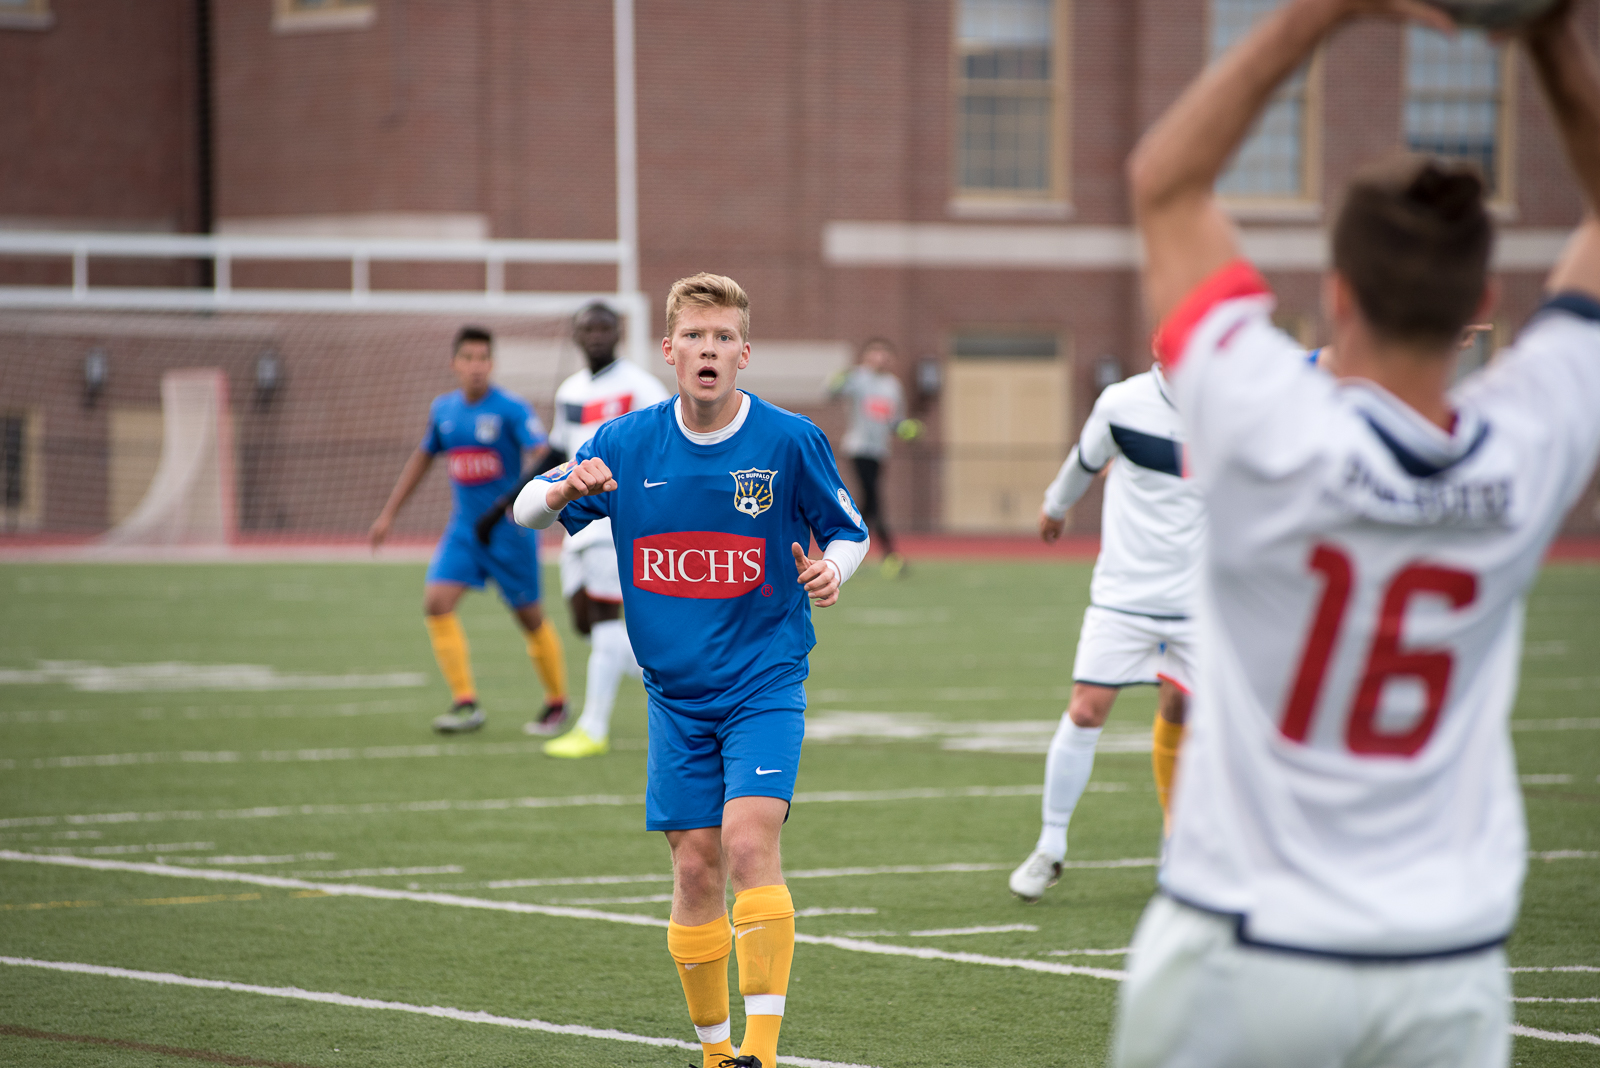 FC Buffalo's Bayley Winkel and his teammates will face a makeshift squad of BDSL players in a match on May 15. (Matt Weinberg/Special to The News)